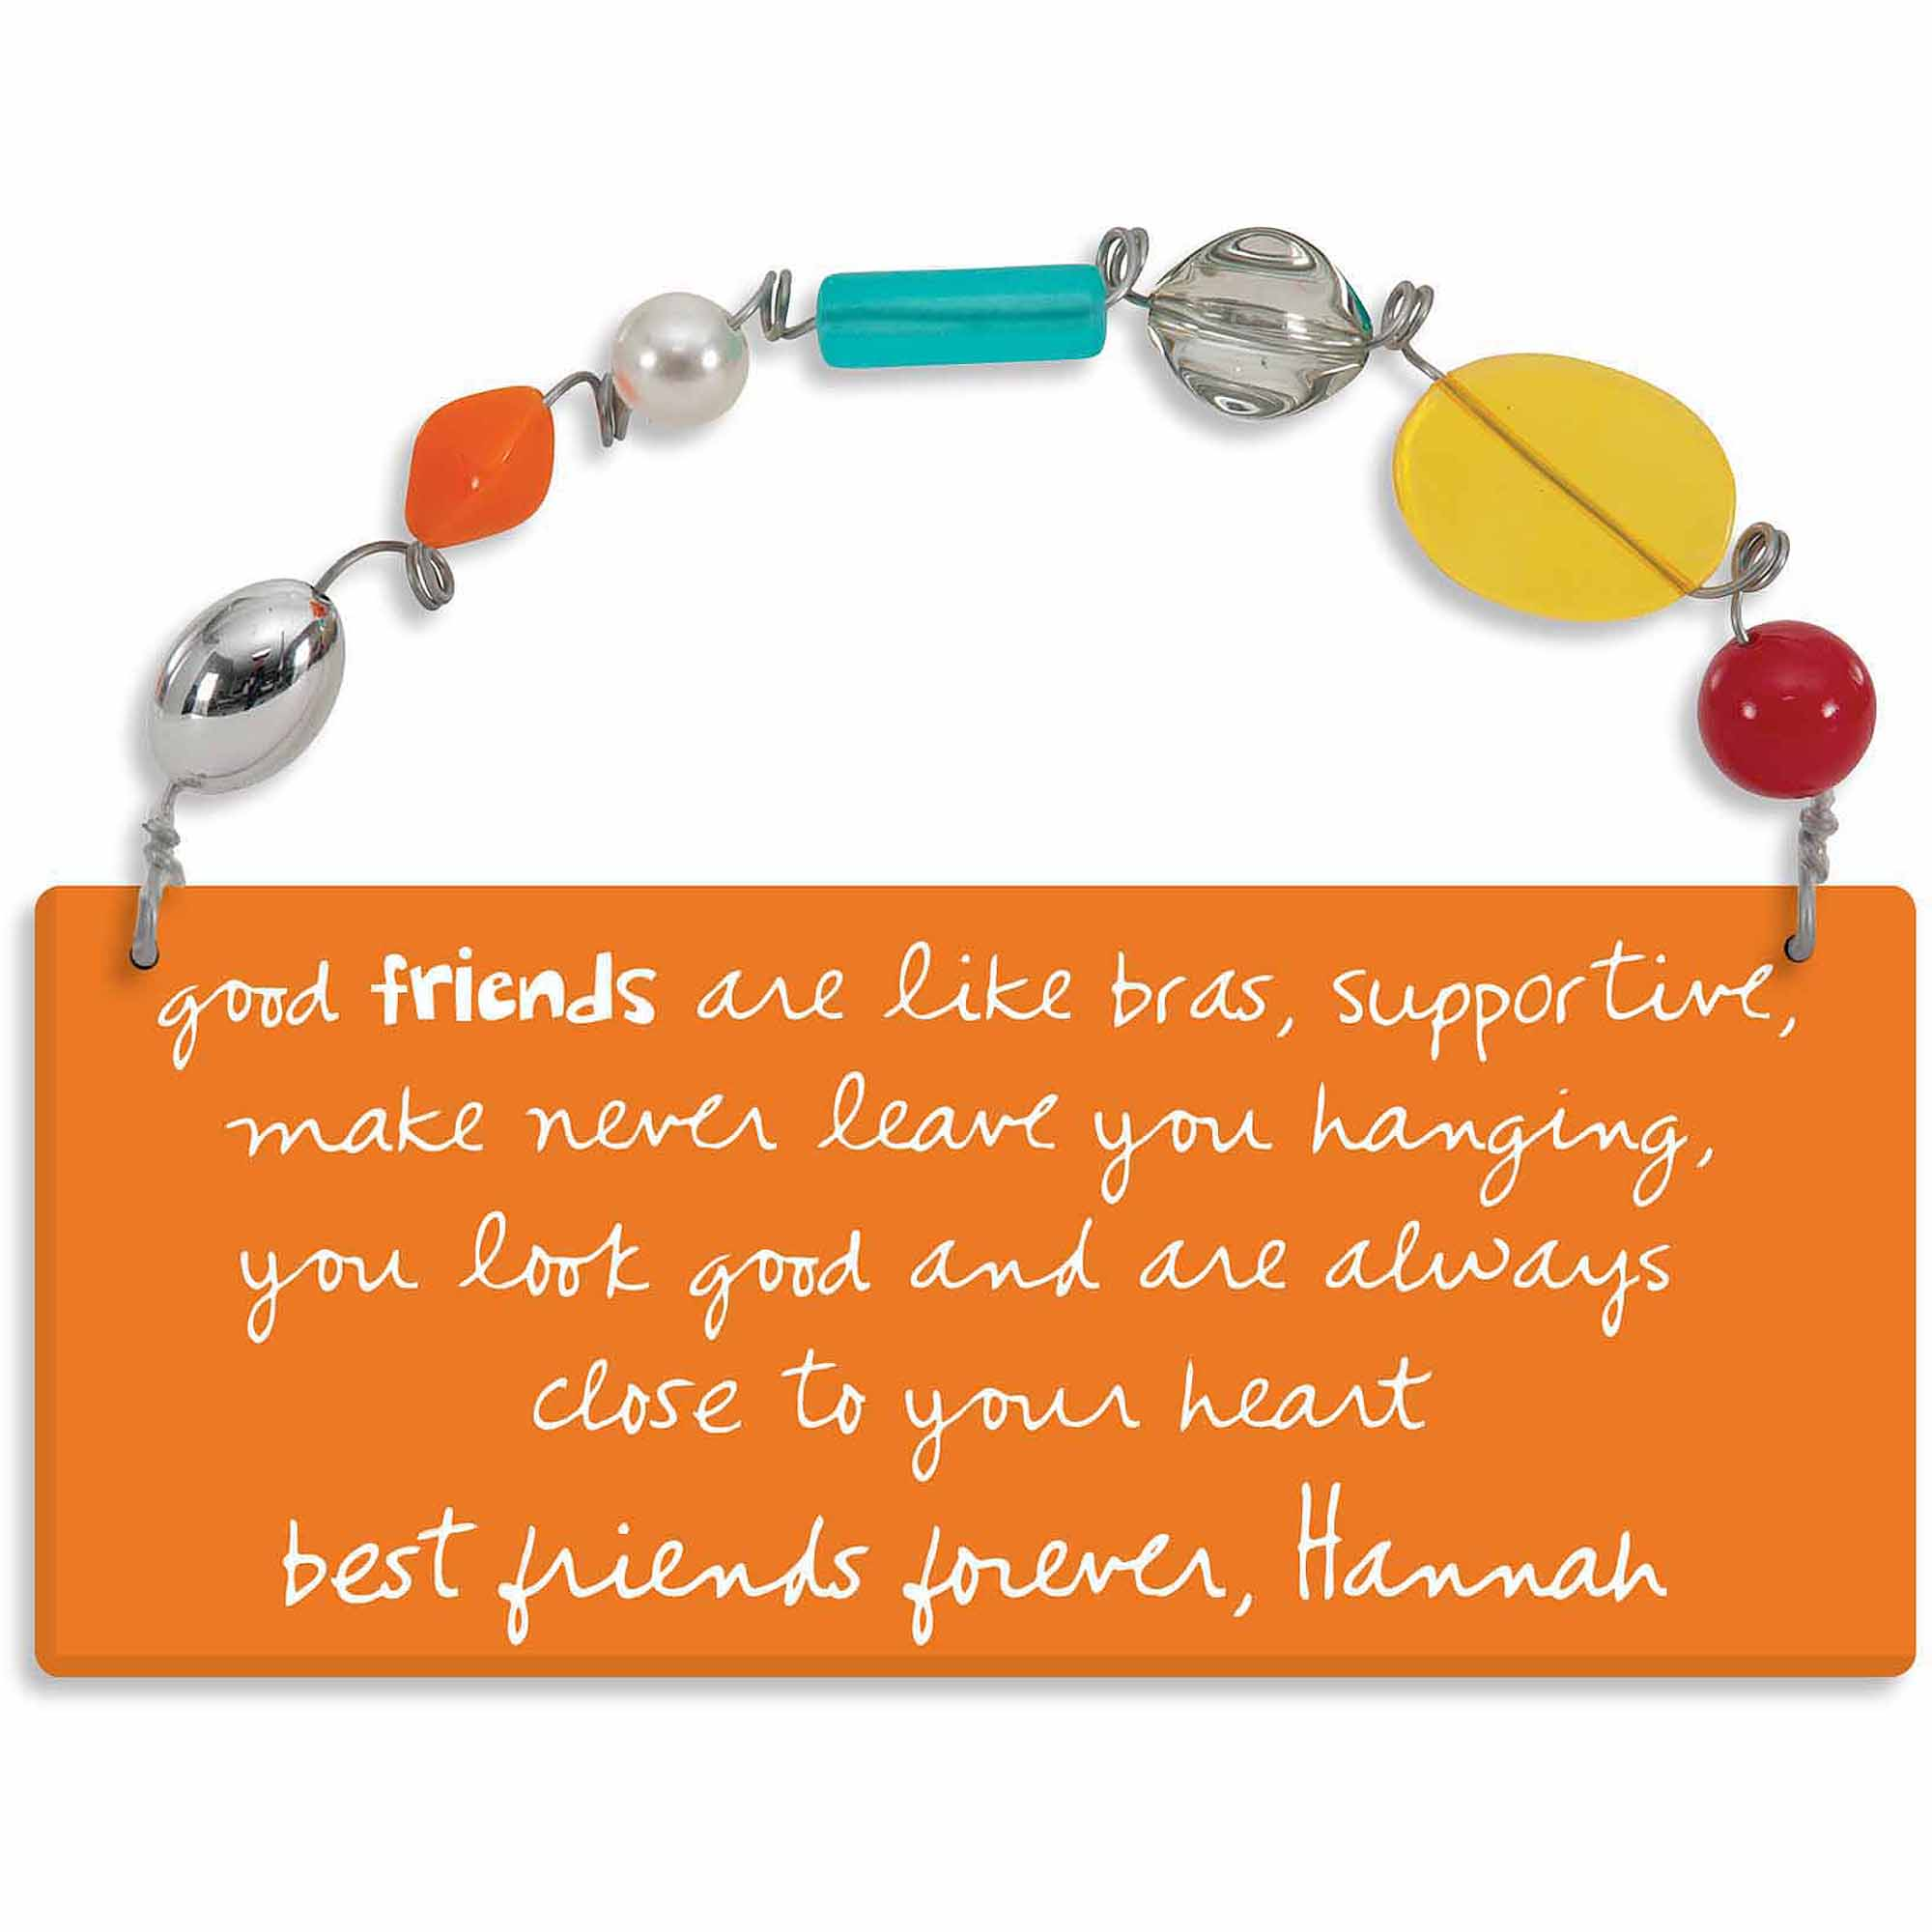 Personalized Sandra Magsamen Good Friends Are Like Bras Wall Plaque